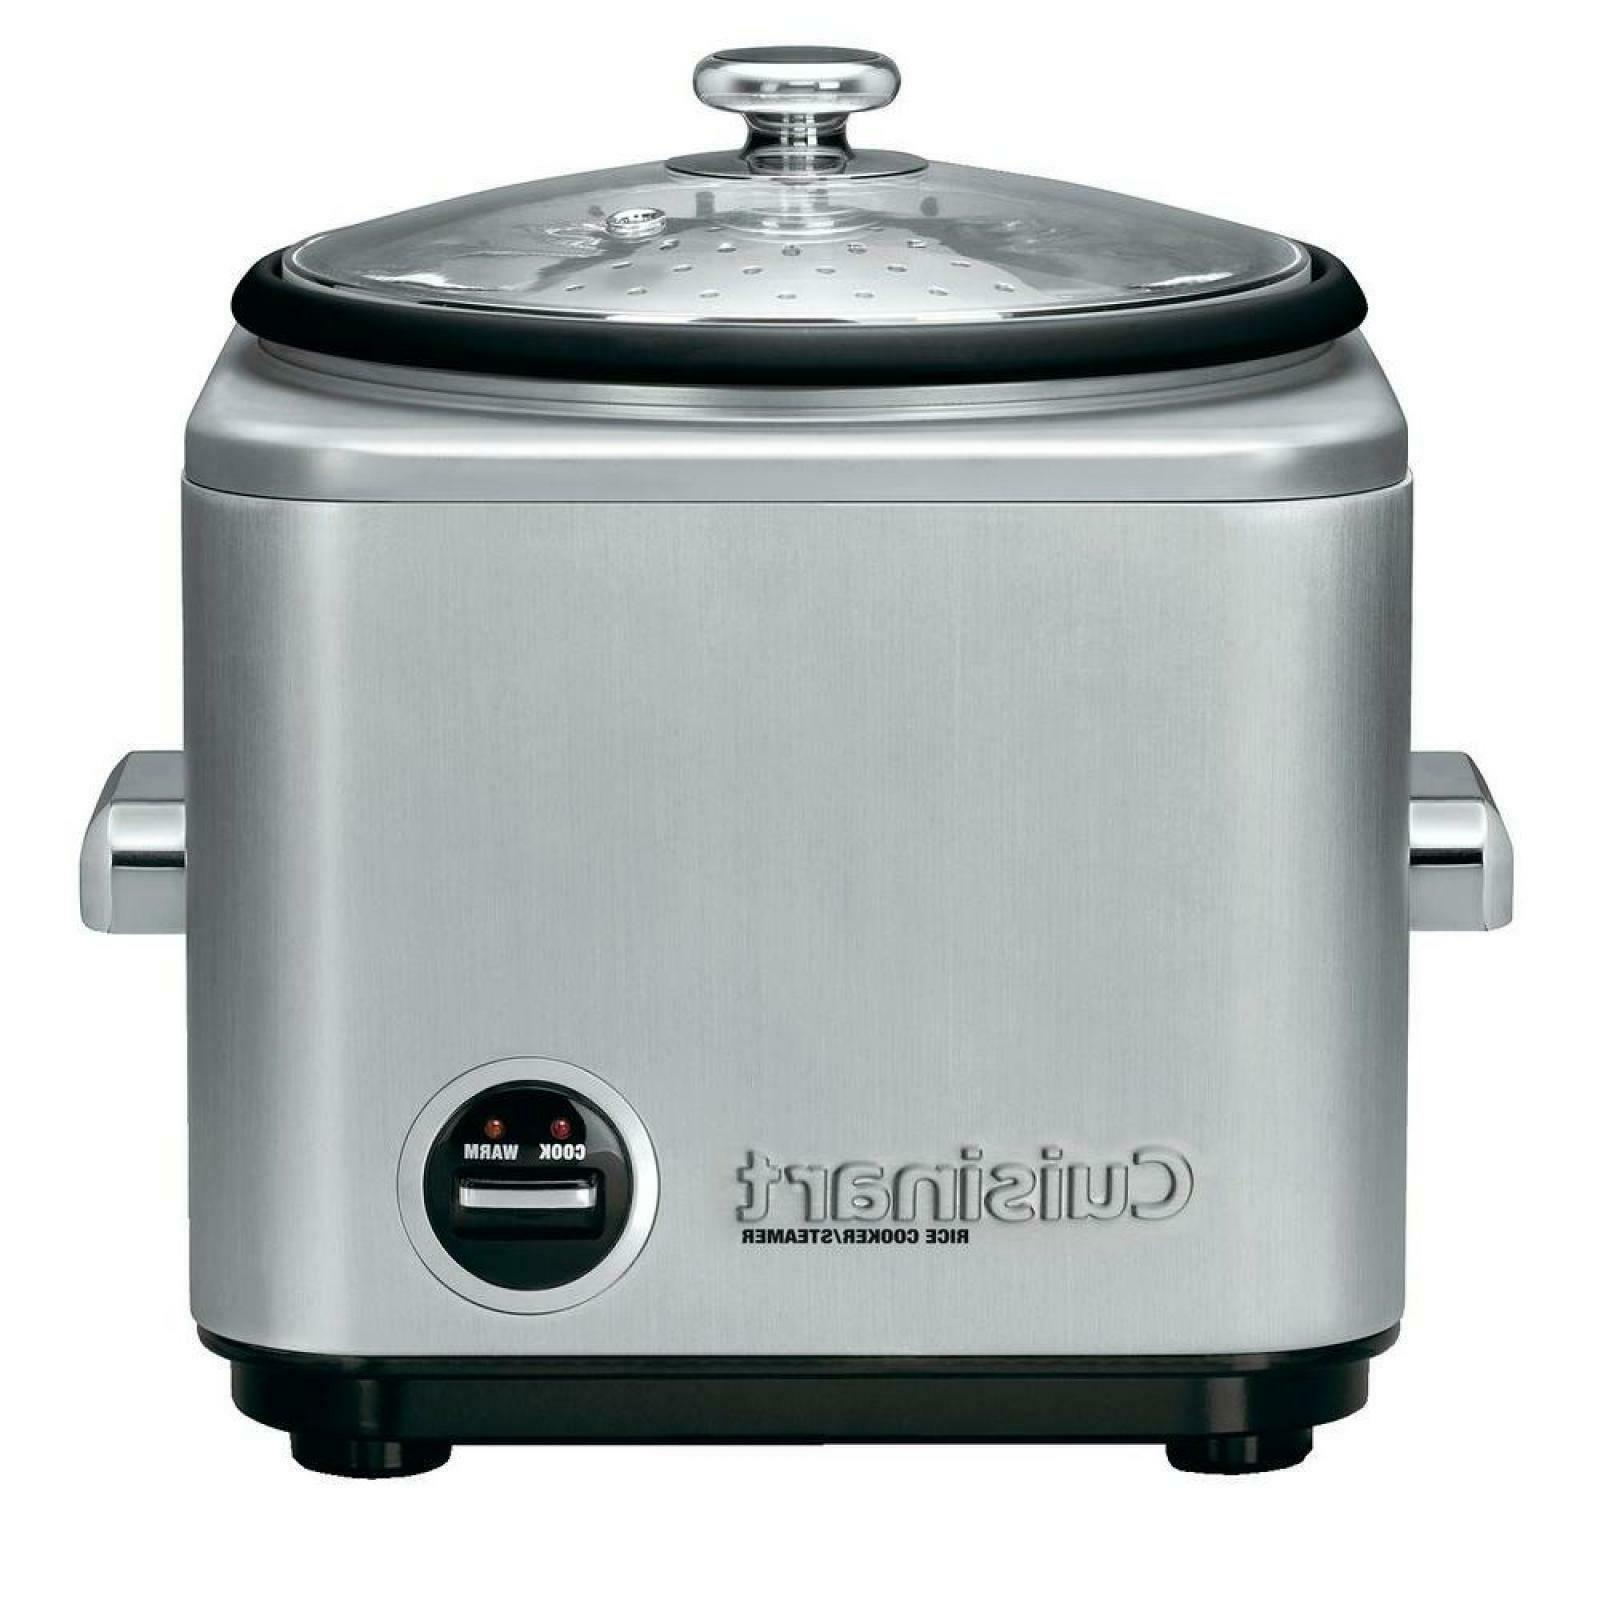 8-Cup Steel Cooker With Cord Storage And